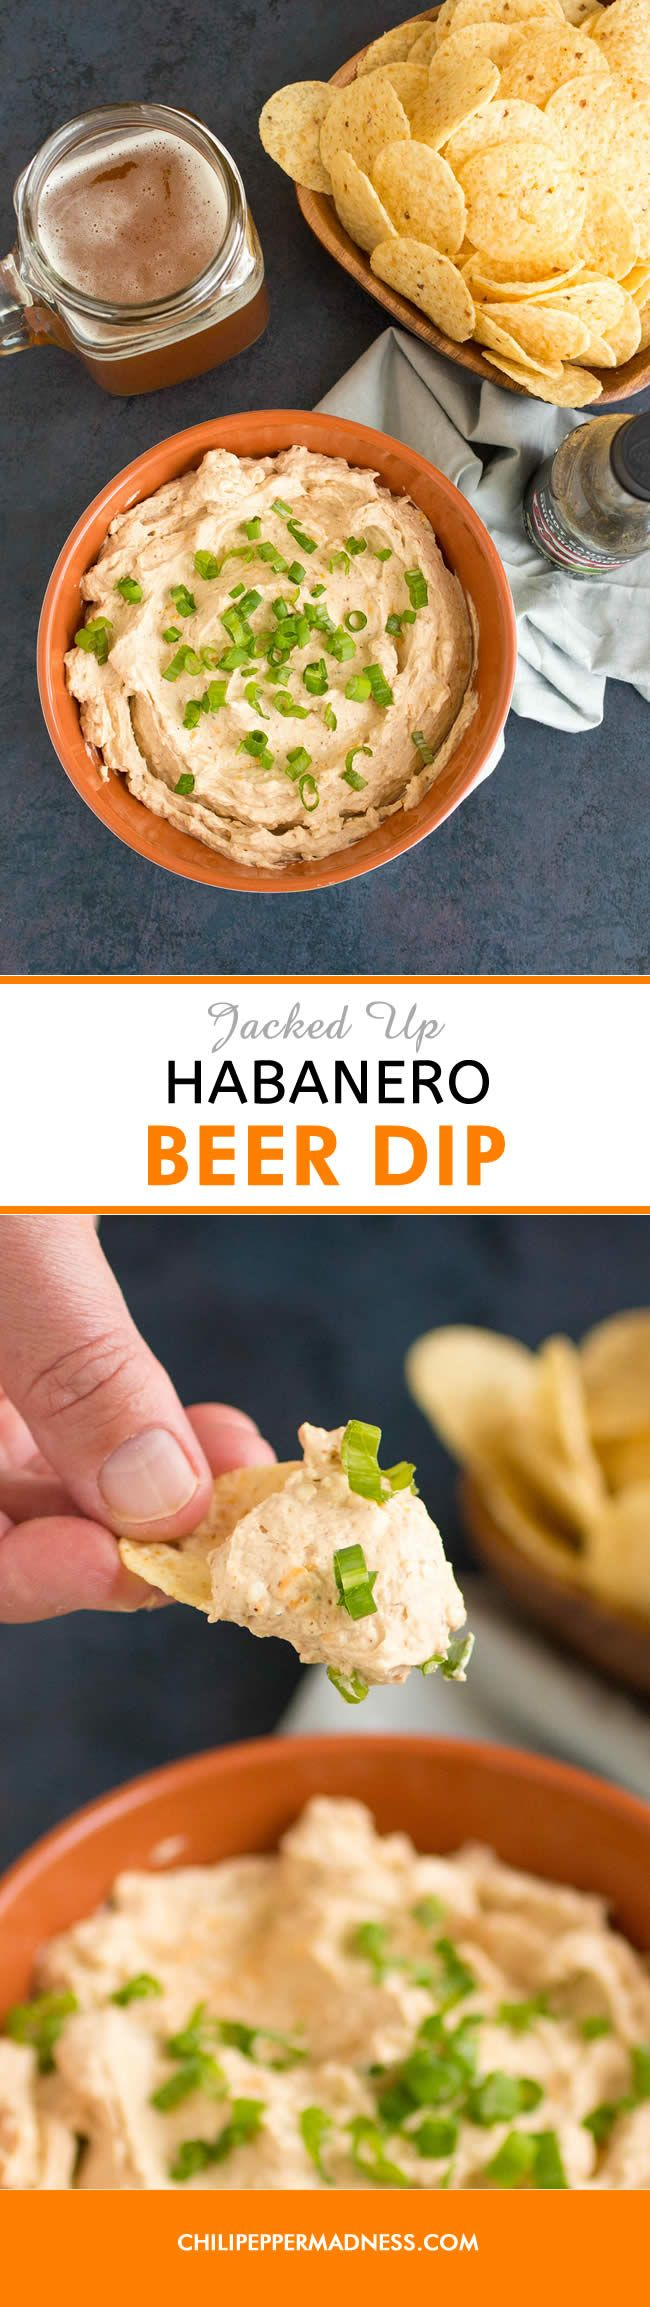 """Jacked Up Habanero Beer Dip - This spicy beer dip recipe is """"jacked up"""" with habanero hot sauce, perfect for any party, an anytime snack, and ridiculously easy to bring with you to your favorite venue. @elyucateco #KingofFlavor  #FlavorRocks #ad"""